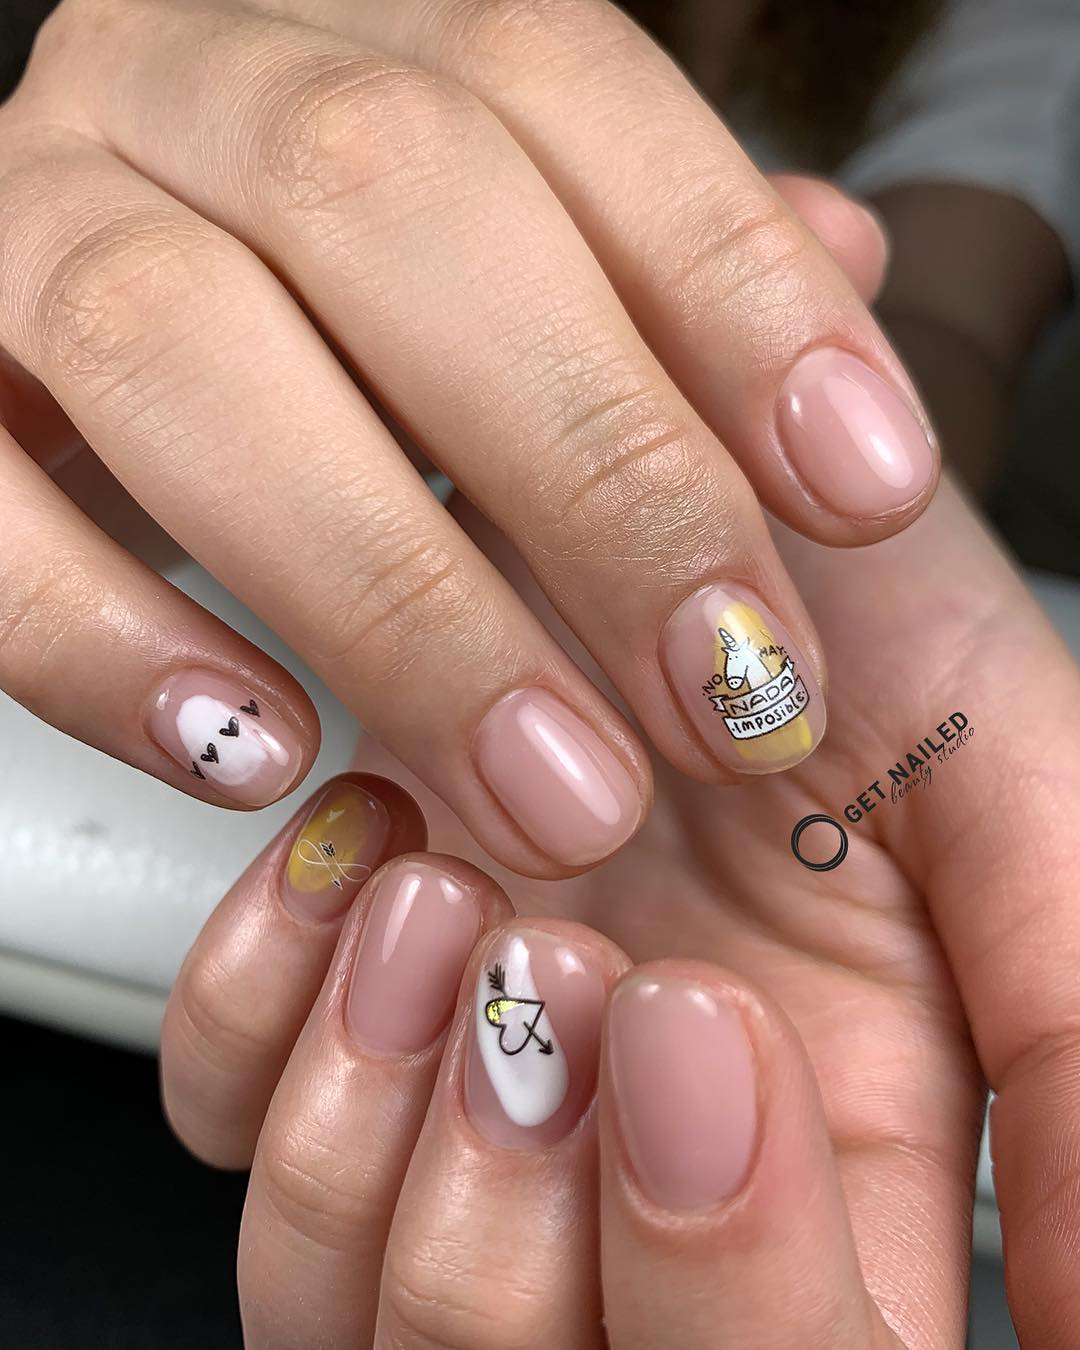 No hay nada imposible  Nails done by MargaritaYou can book your appointment on getnailed.co, through DM, WhatsApp +34 680 576 151 or simply by leaving a comment ..luxiogel